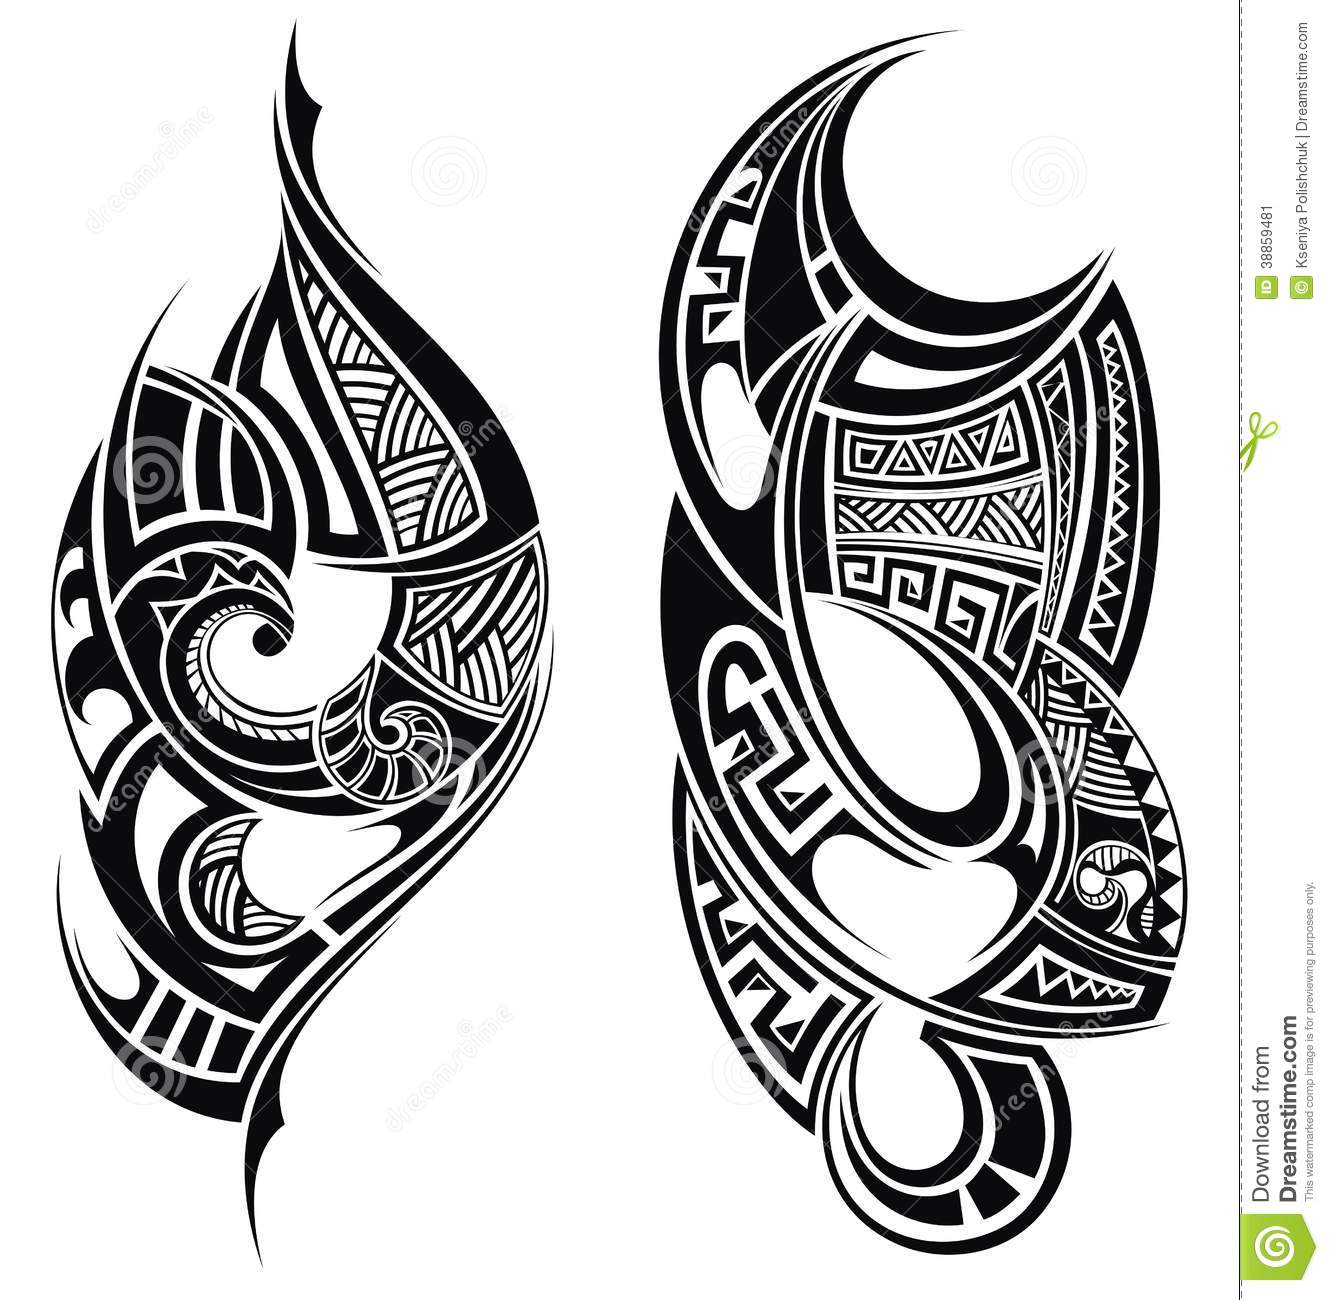 Tribal Tattoo Elements Stock Vector. Illustration Of